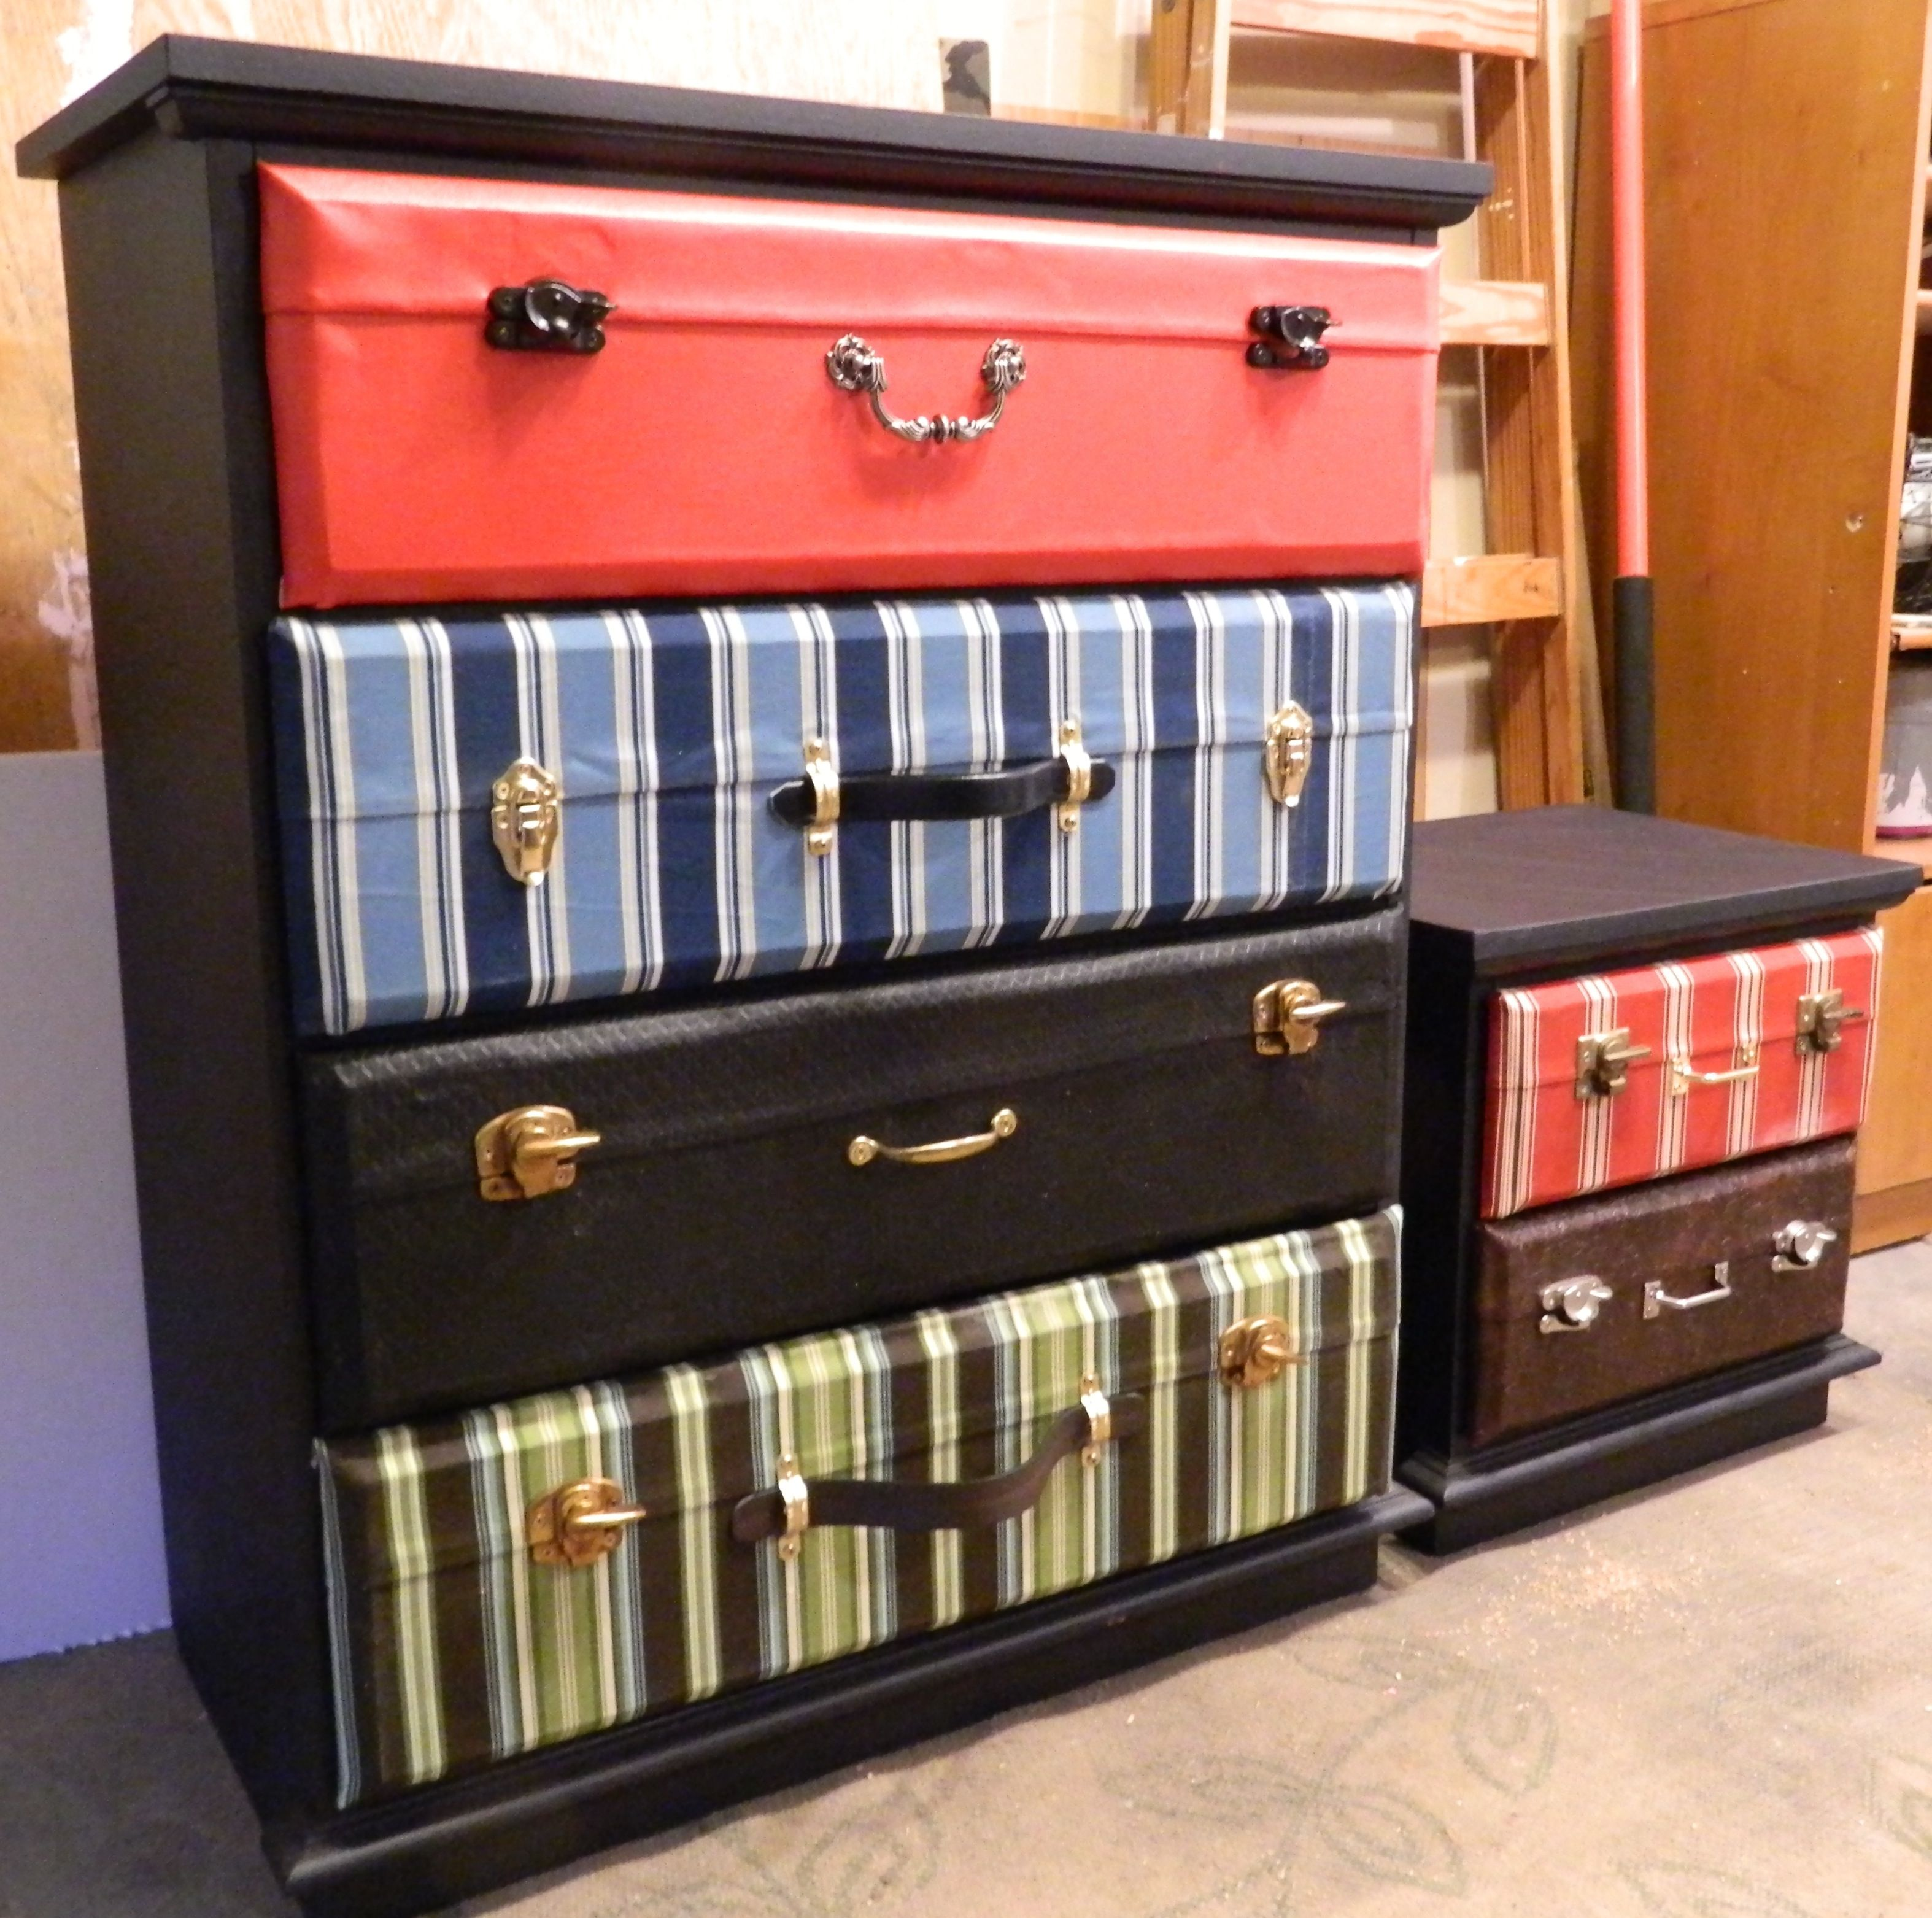 Creating a Suitcase Dresser: A Tutorial | Room, Dresser and ...